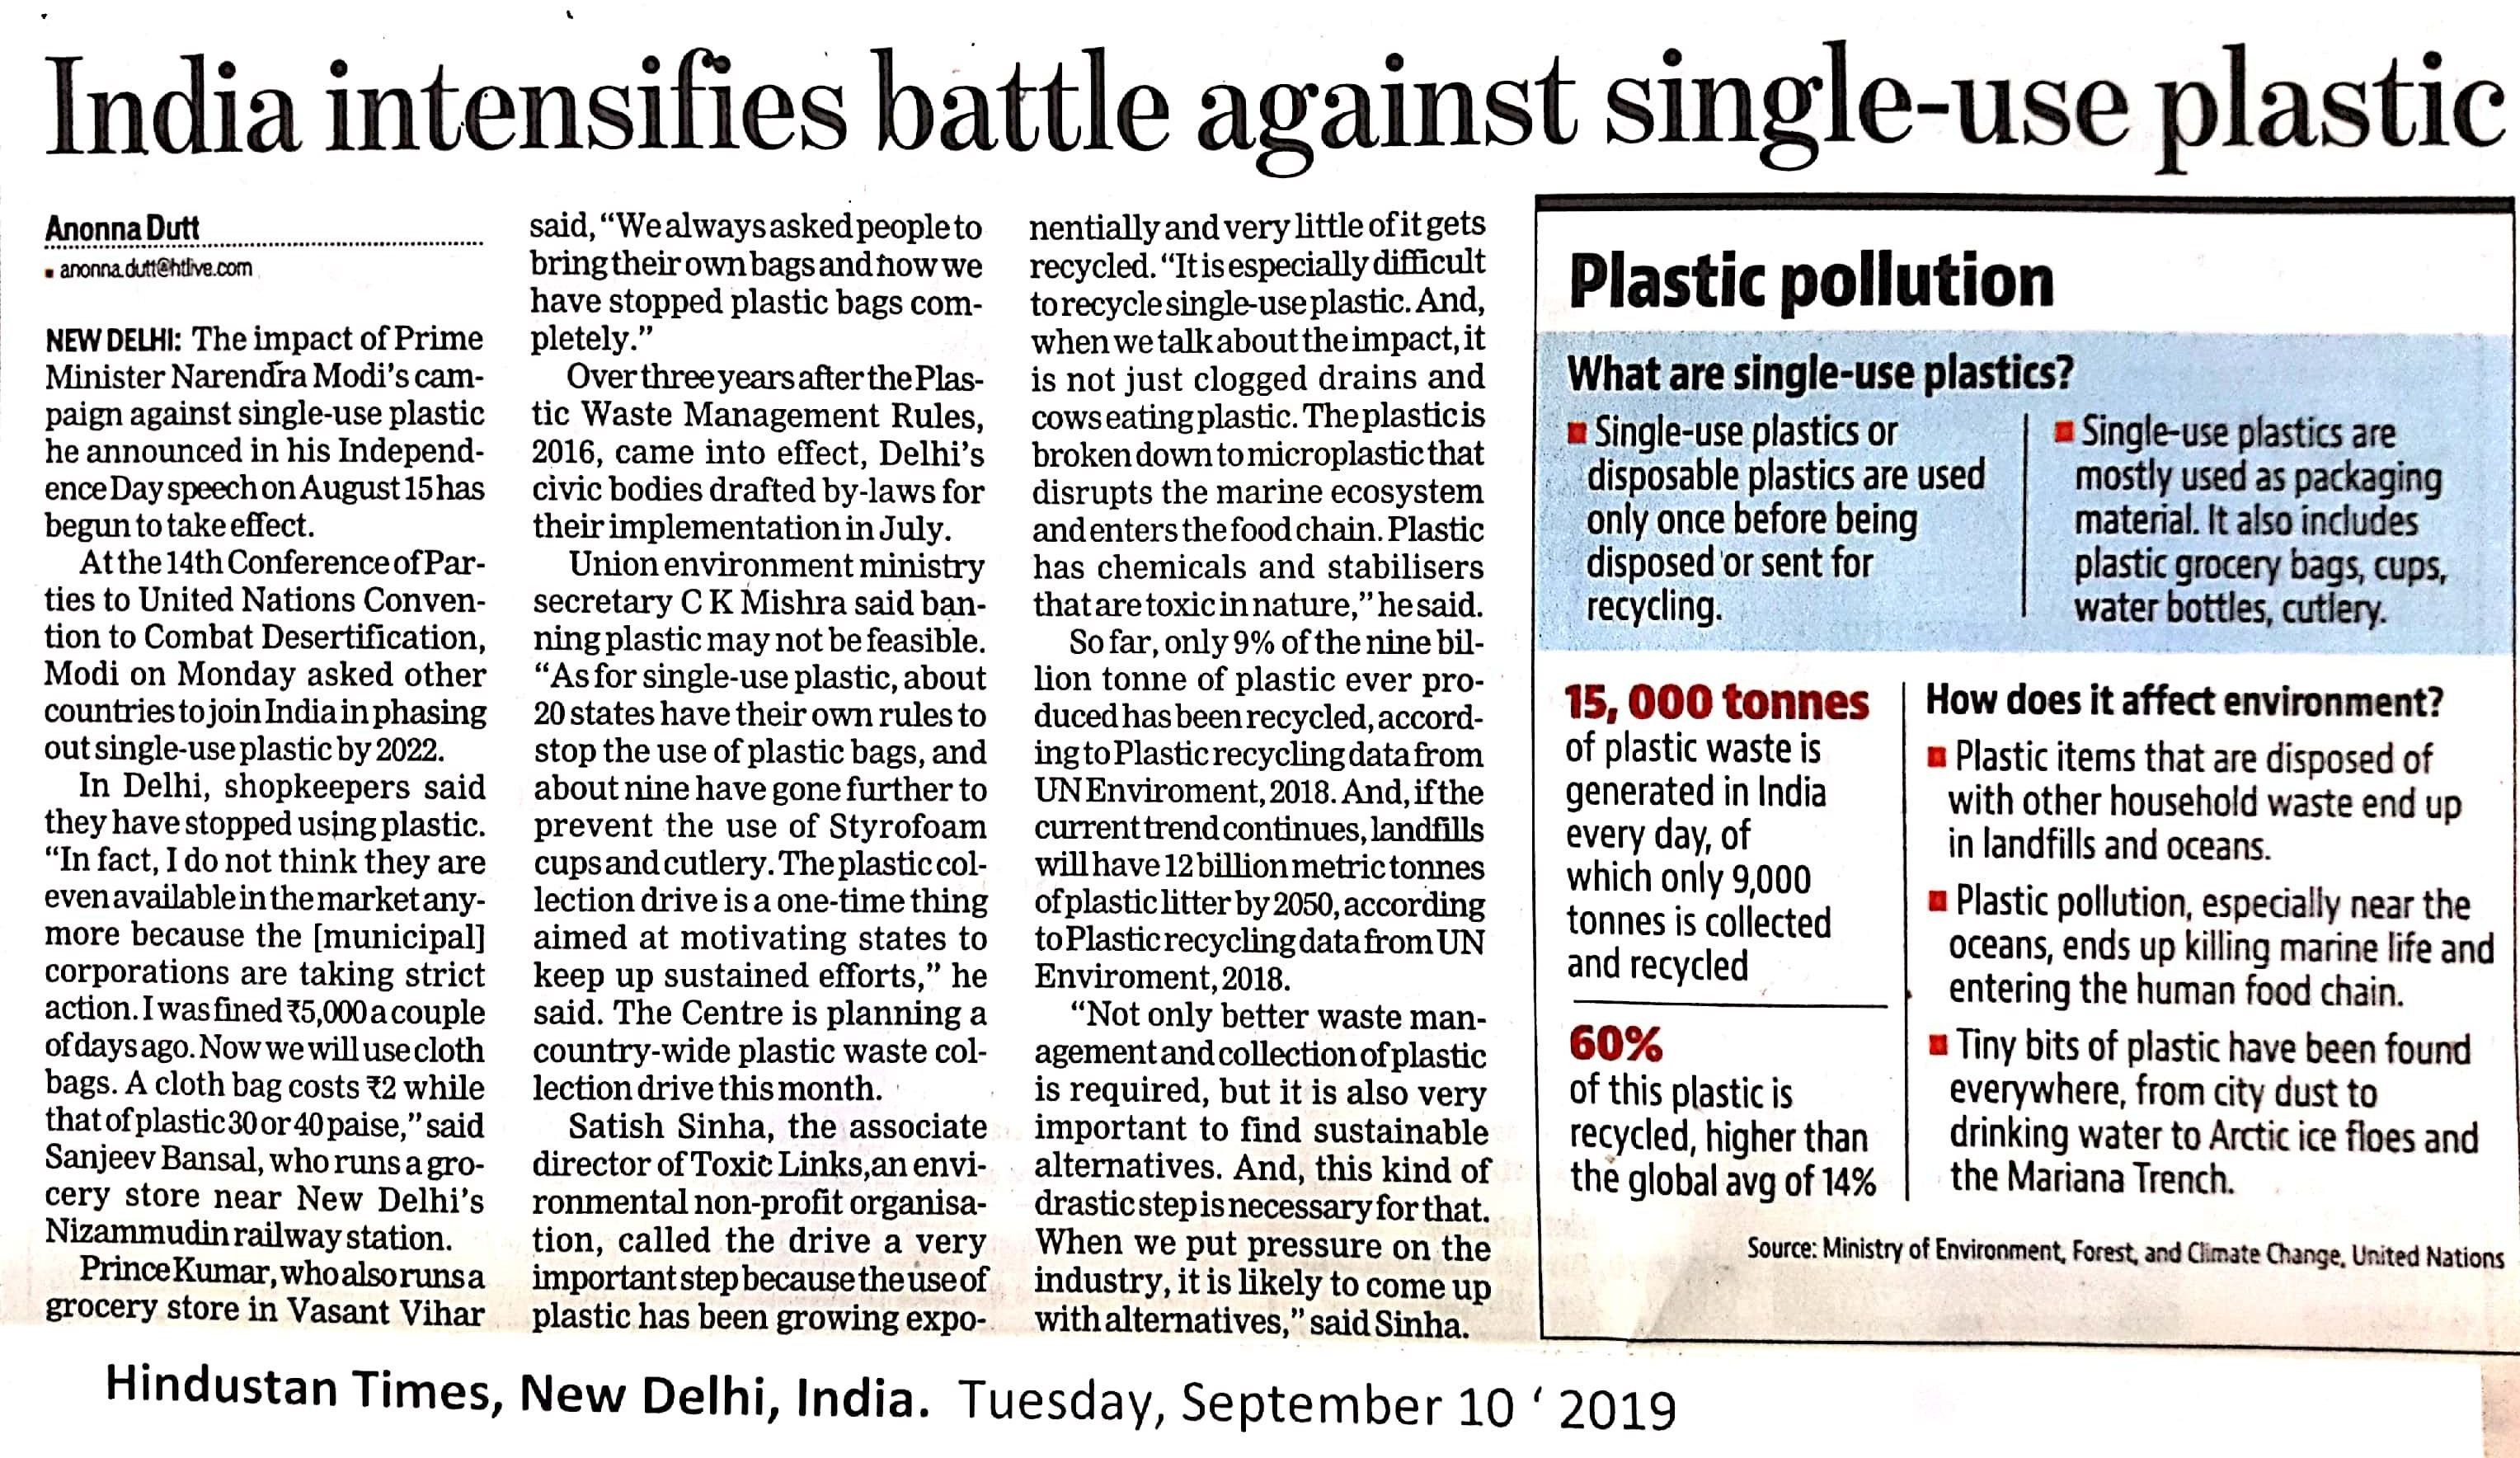 India intensifies battle against single-use plastic.